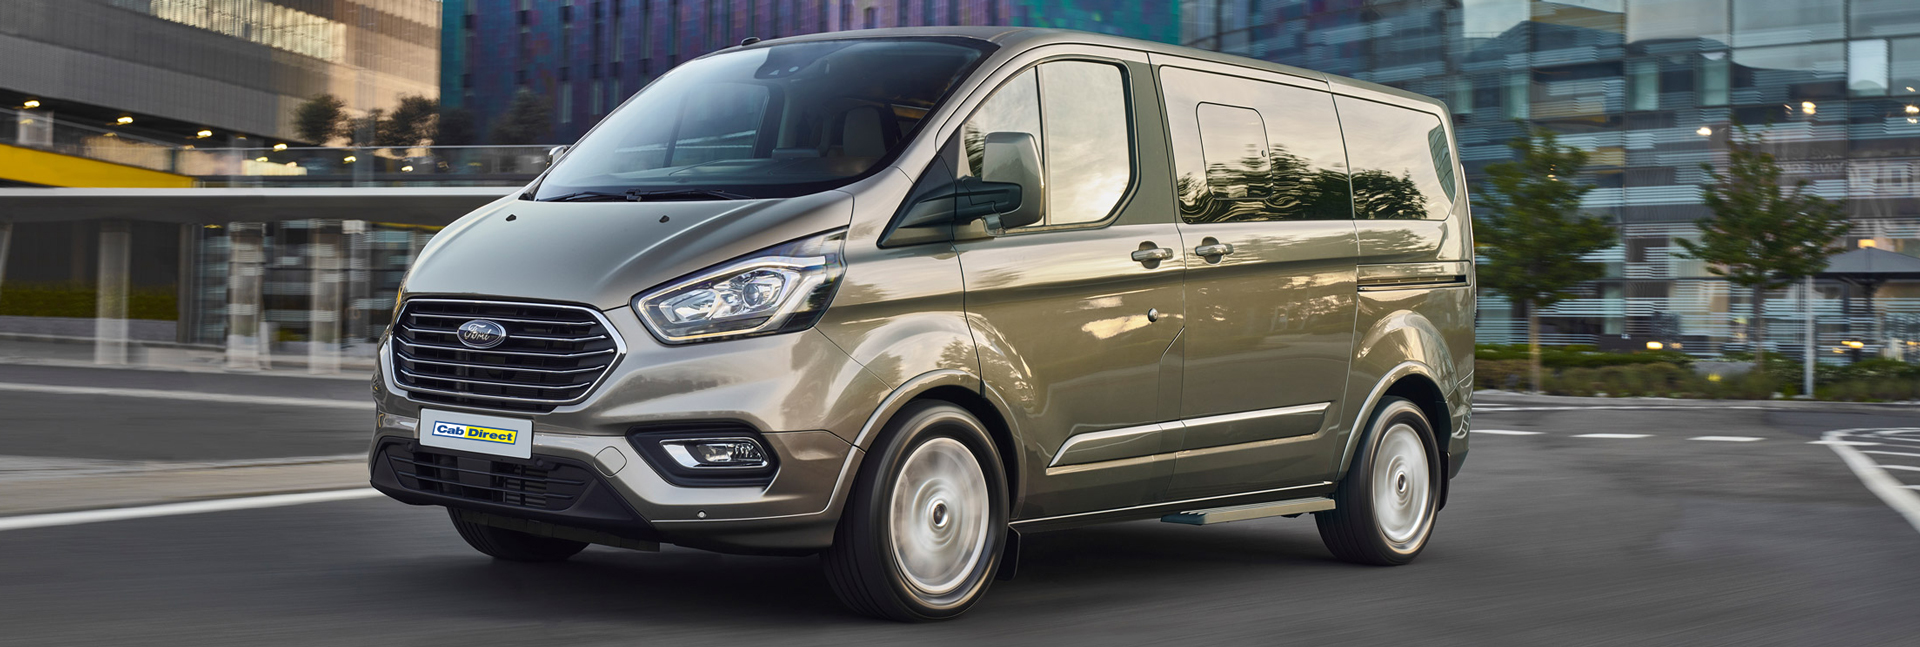 Ford Tourneo Custom Taxis For Sale Cab Direct